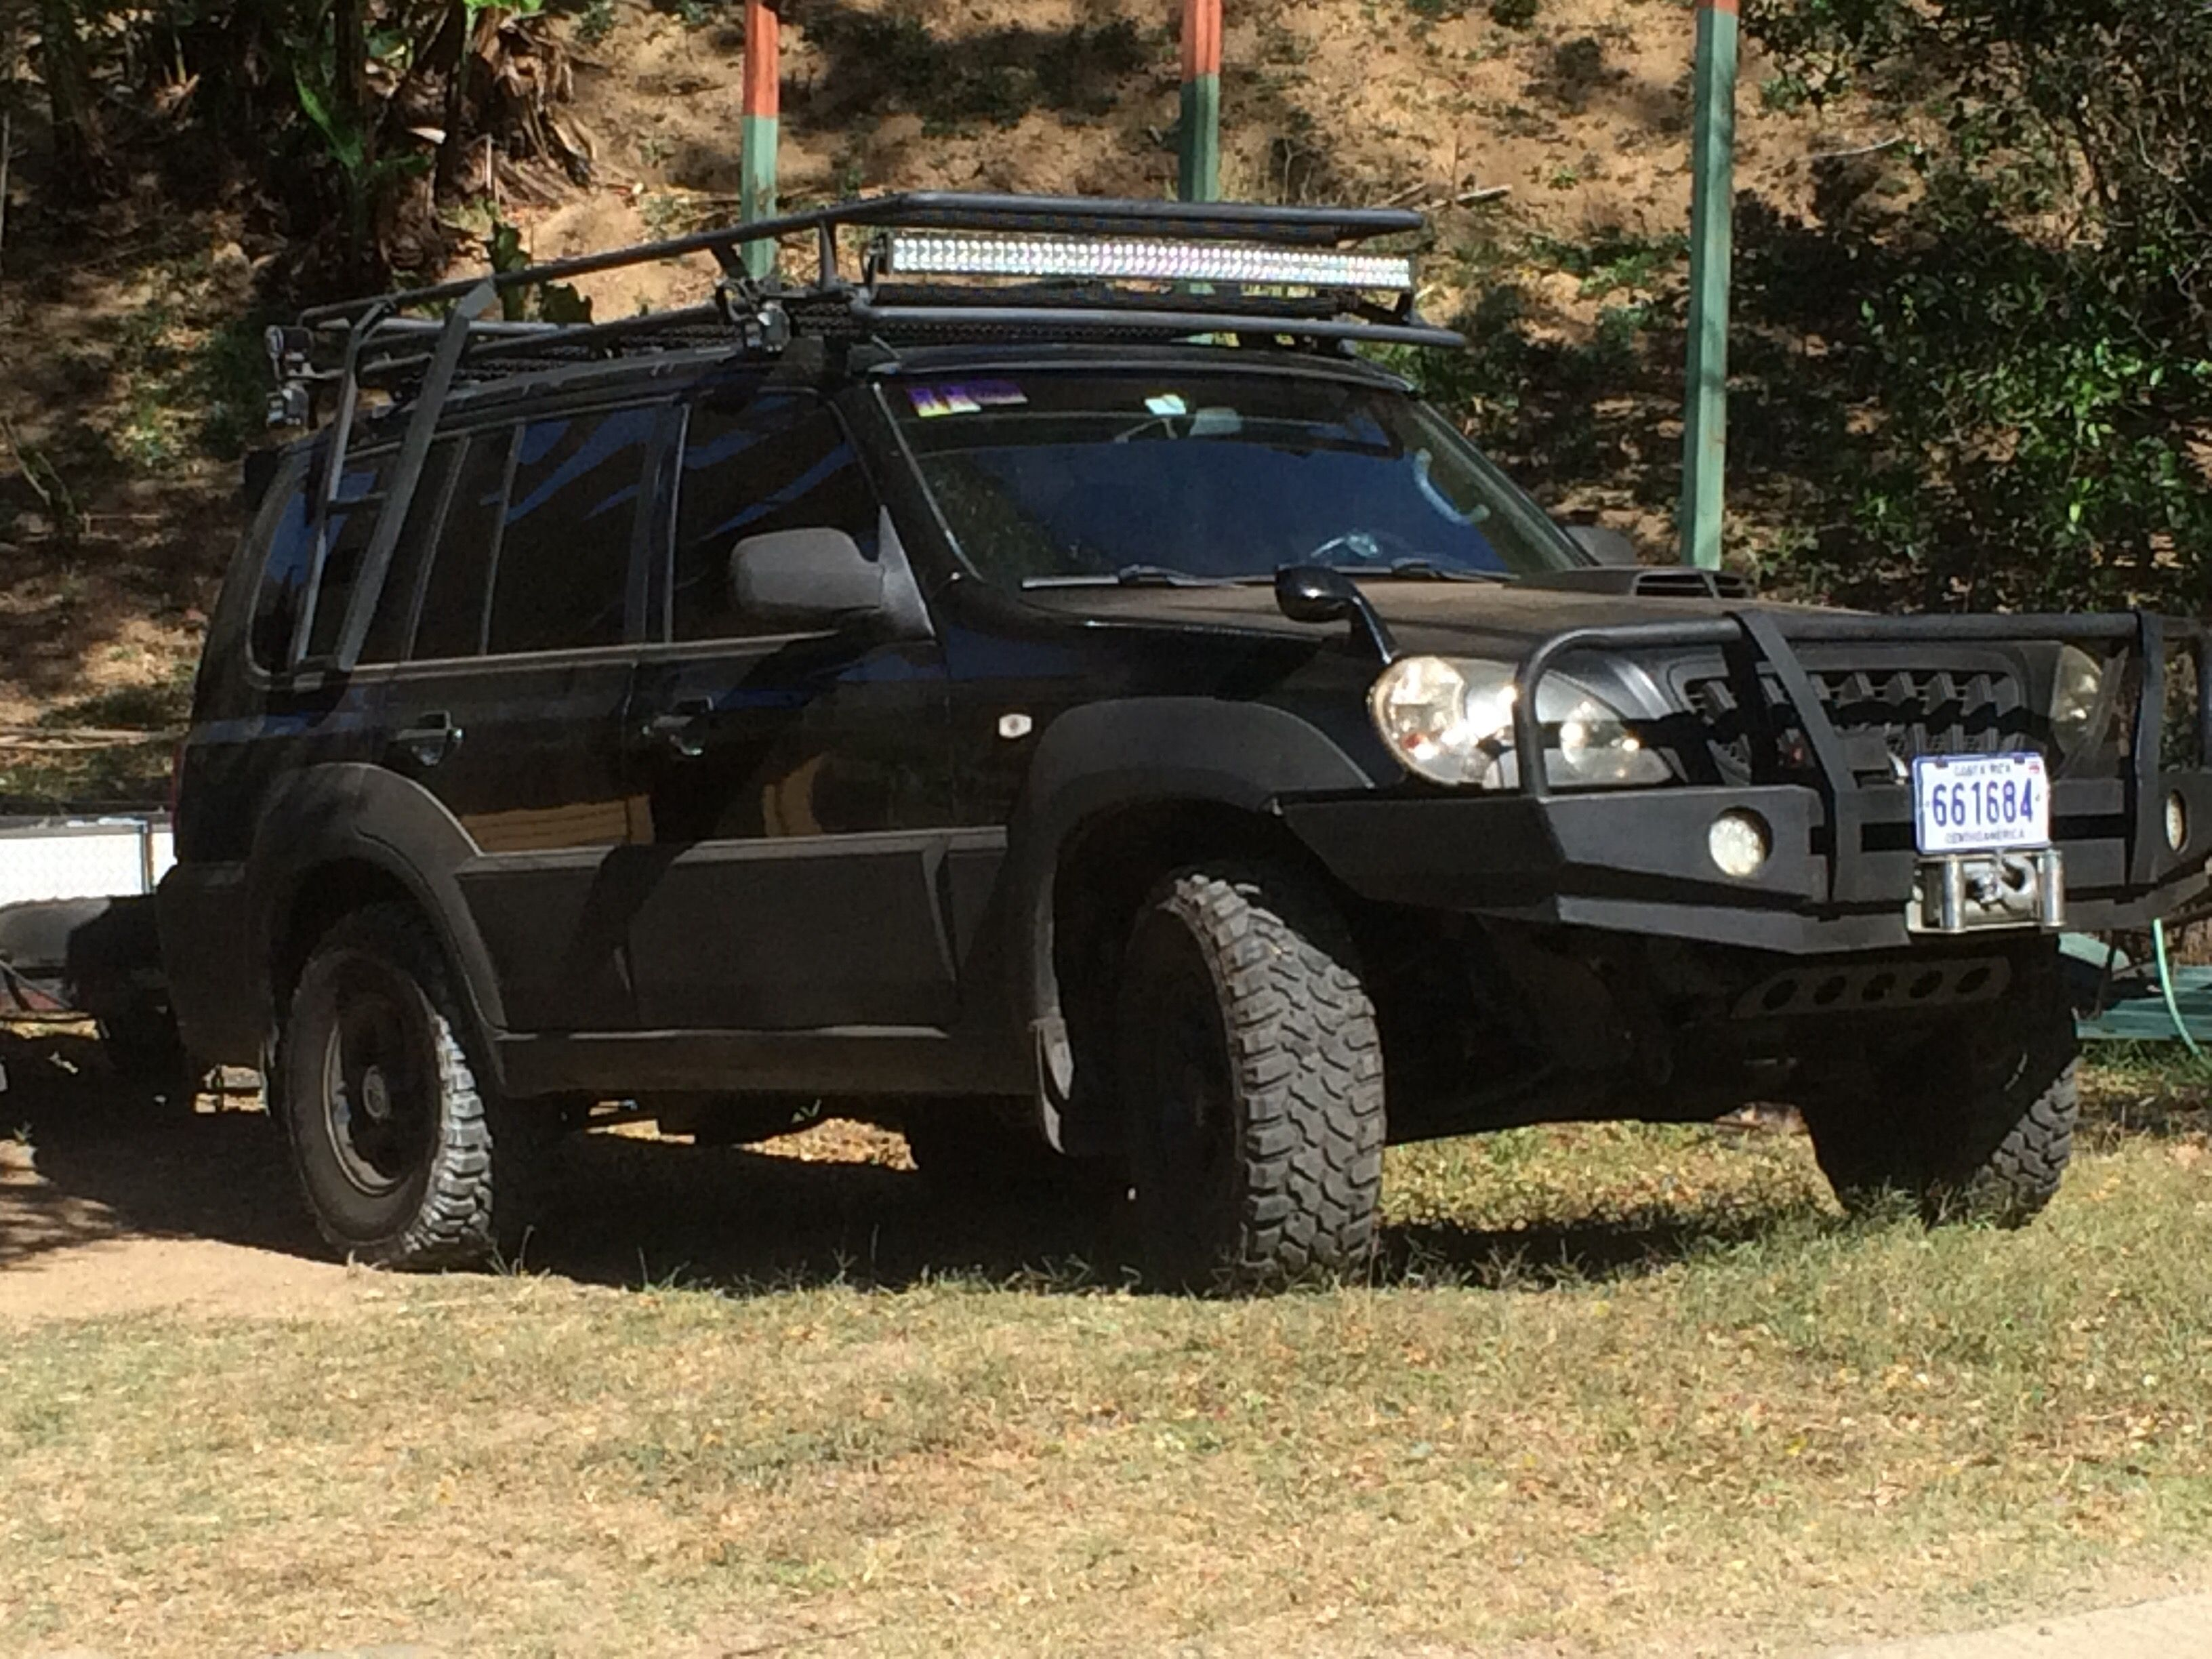 49ce78e1f962c5a4456d81c63d68d410 Take A Look About Montero Sport 2002 with Exciting Images Cars Review